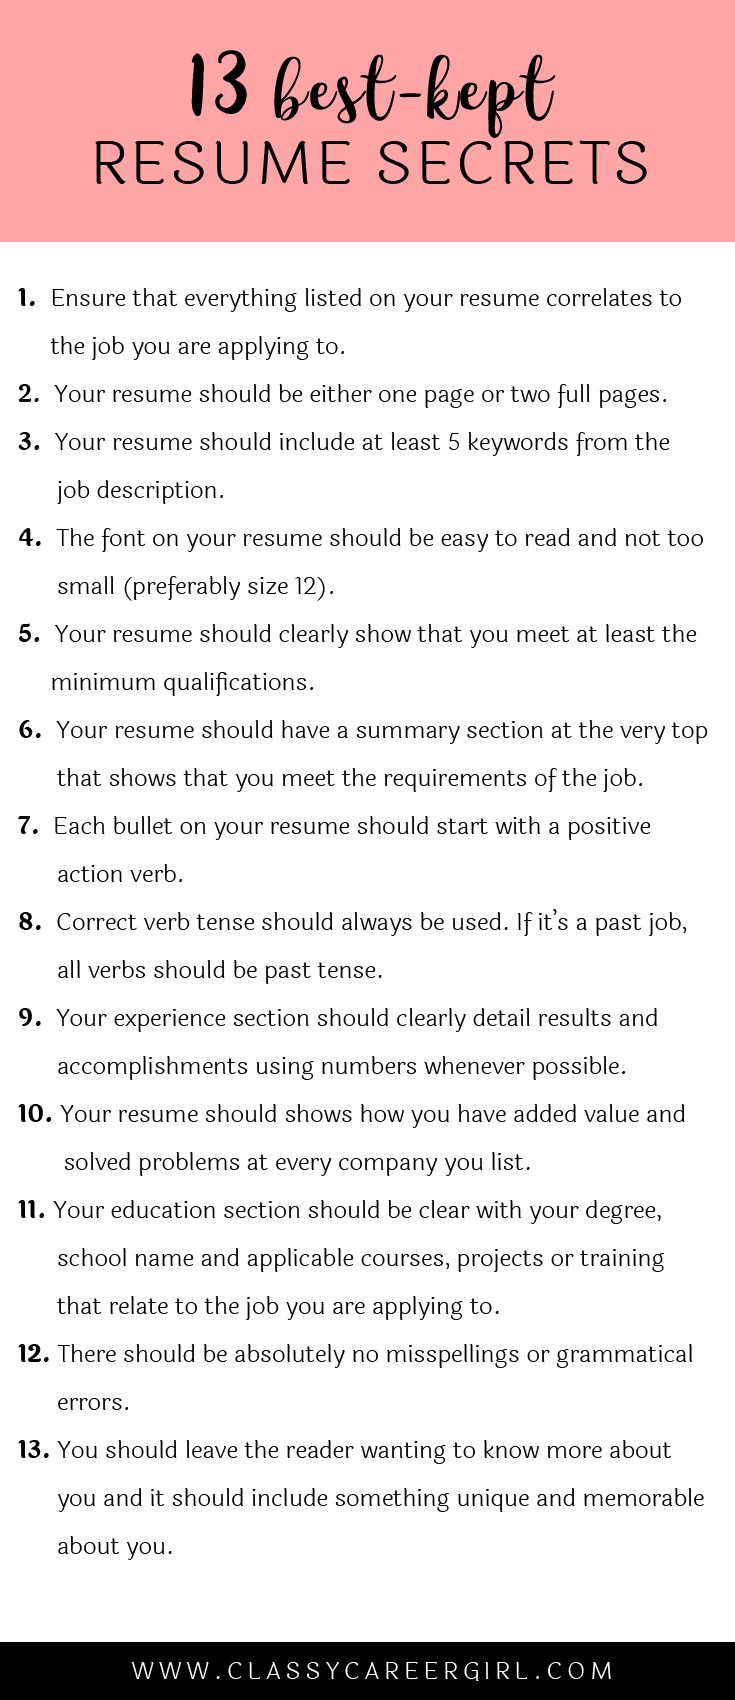 Opposenewapstandardsus  Unique  Ideas About Resume On Pinterest  Cv Format Resume Cv And  With Fascinating Some Hiring Managers Will Toss Your Resume Out If You Dont Know These  With Divine Entry Level Office Assistant Resume Also Cv To Resume In Addition List Of Hard Skills For Resume And Cashier Resumes As Well As Nursing Student Resume Clinical Experience Additionally Example It Resume From Pinterestcom With Opposenewapstandardsus  Fascinating  Ideas About Resume On Pinterest  Cv Format Resume Cv And  With Divine Some Hiring Managers Will Toss Your Resume Out If You Dont Know These  And Unique Entry Level Office Assistant Resume Also Cv To Resume In Addition List Of Hard Skills For Resume From Pinterestcom